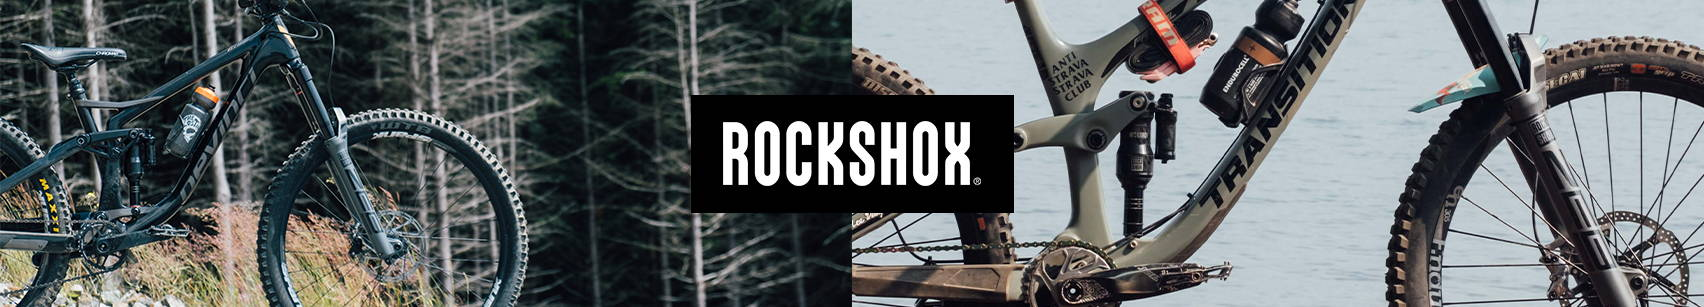 RockShox mountain bike suspension banner photo a devinci spartan with a rockshox zeb and super deluxe ultimate and a transition patrol with a rockshox zeb and a super deluxe ultimate with a meg neg